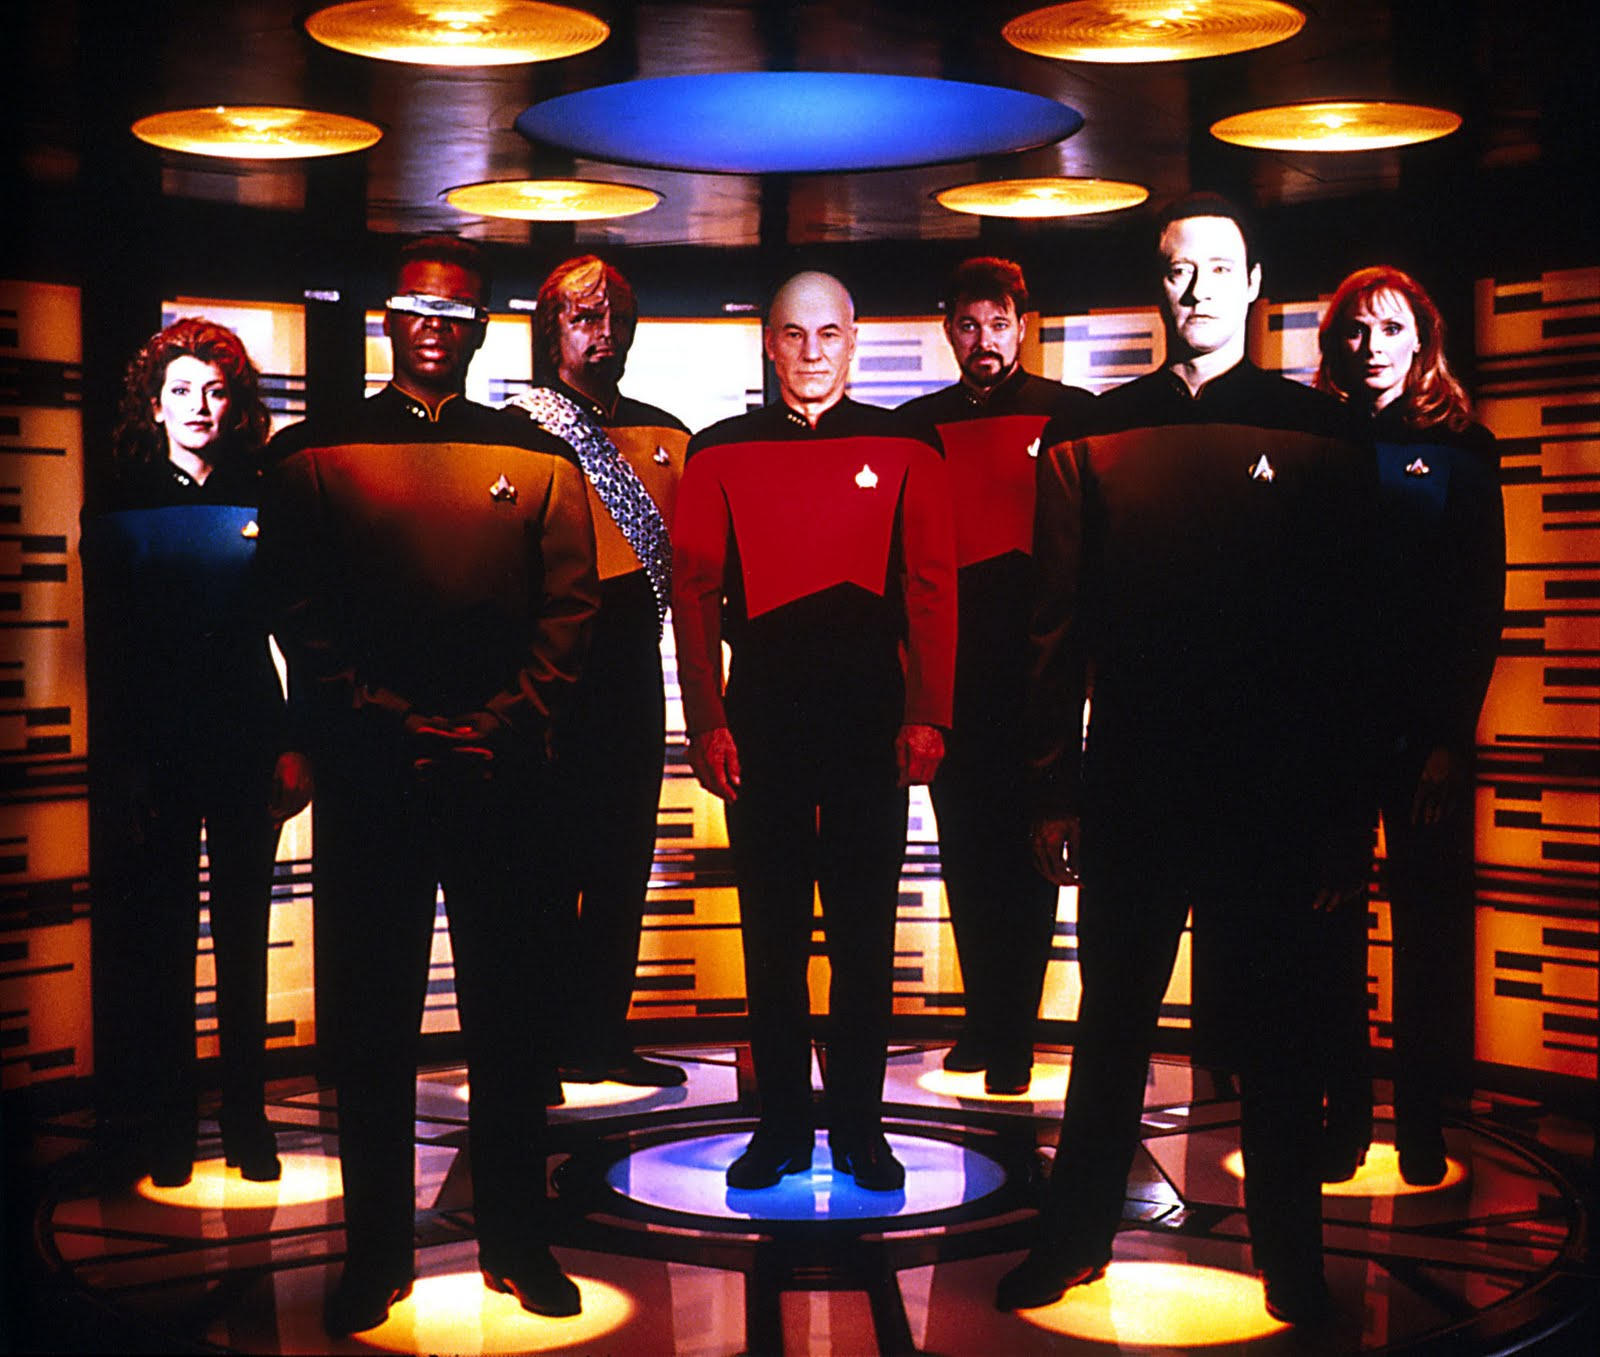 startrek-thenextgeneration-star-trek-the-next-generationphoto